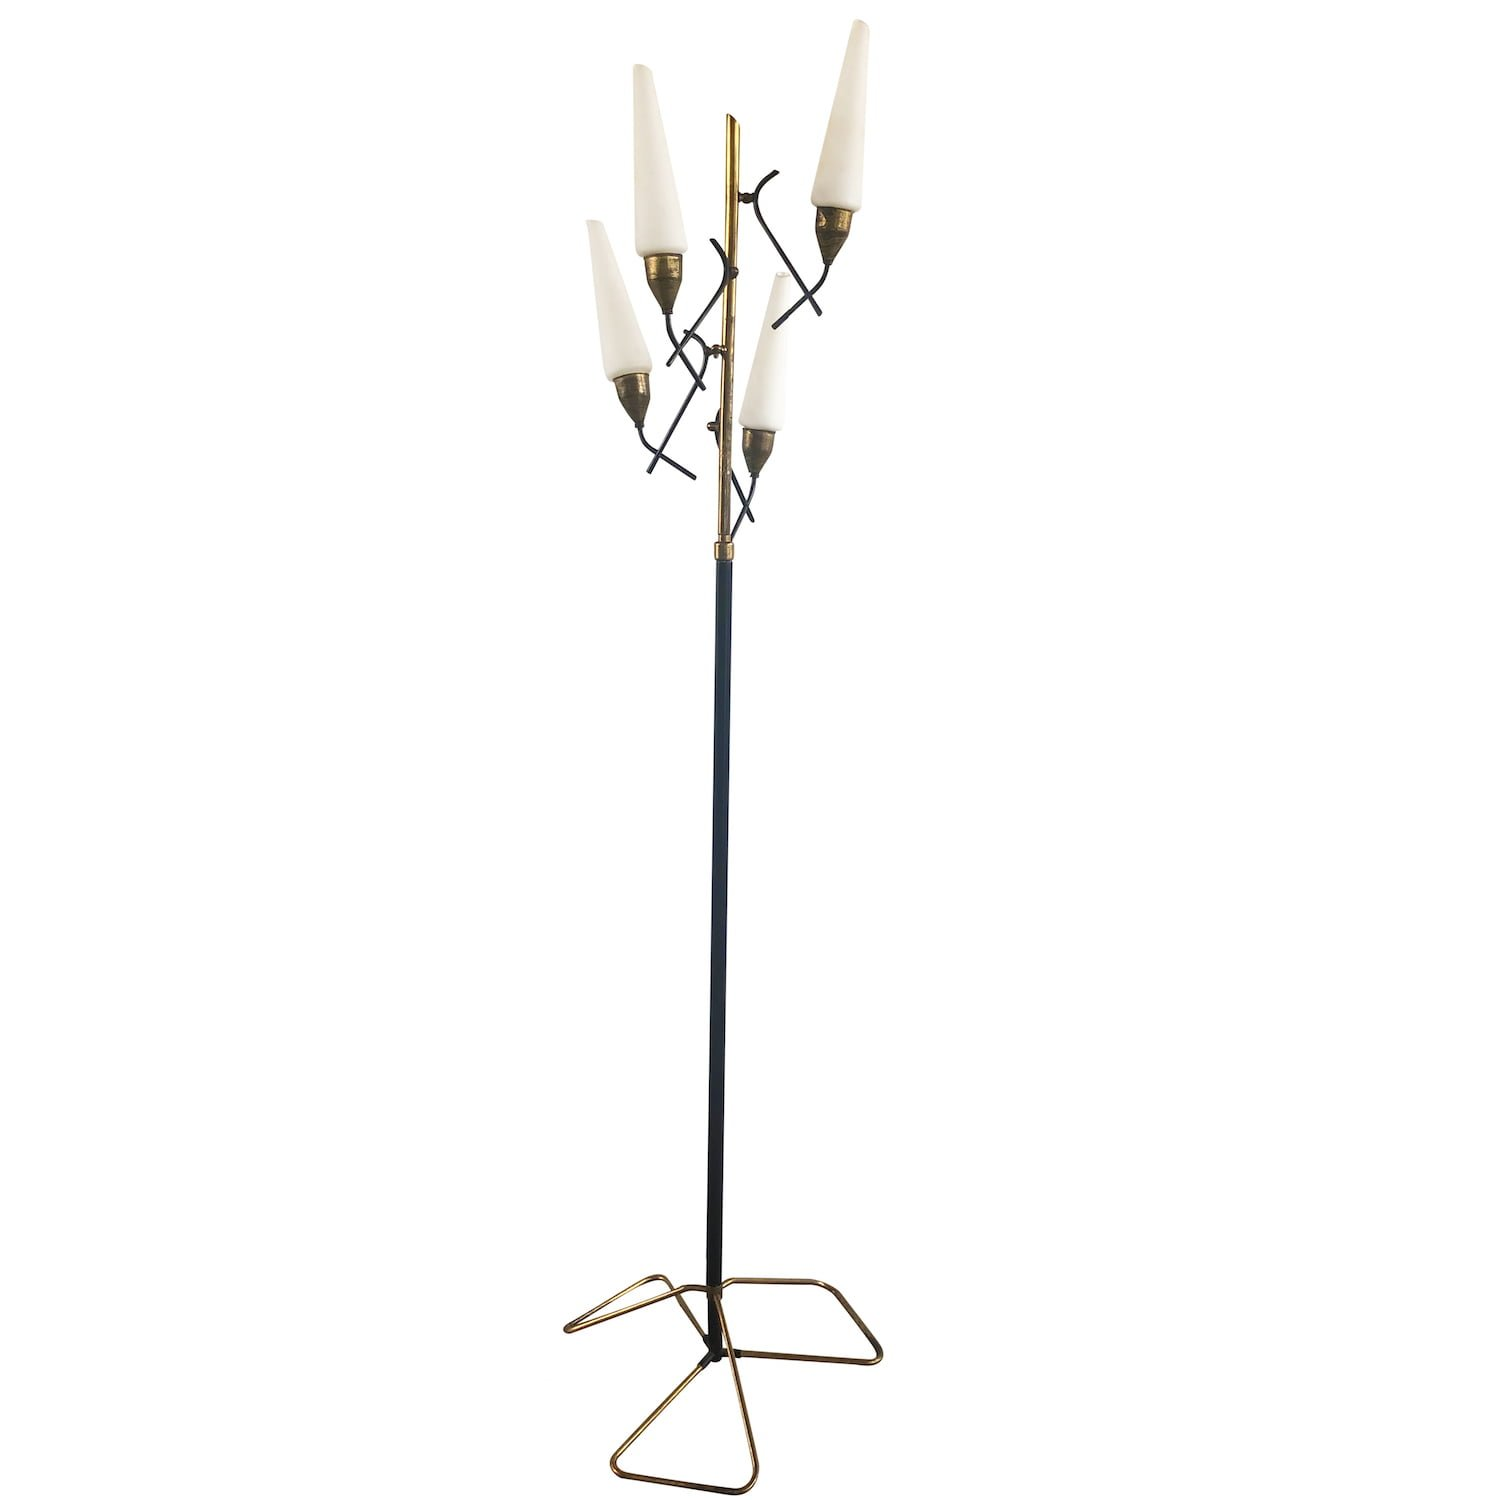 20th Century Italian Iron, Brass Floor Lamp by Stilnovo